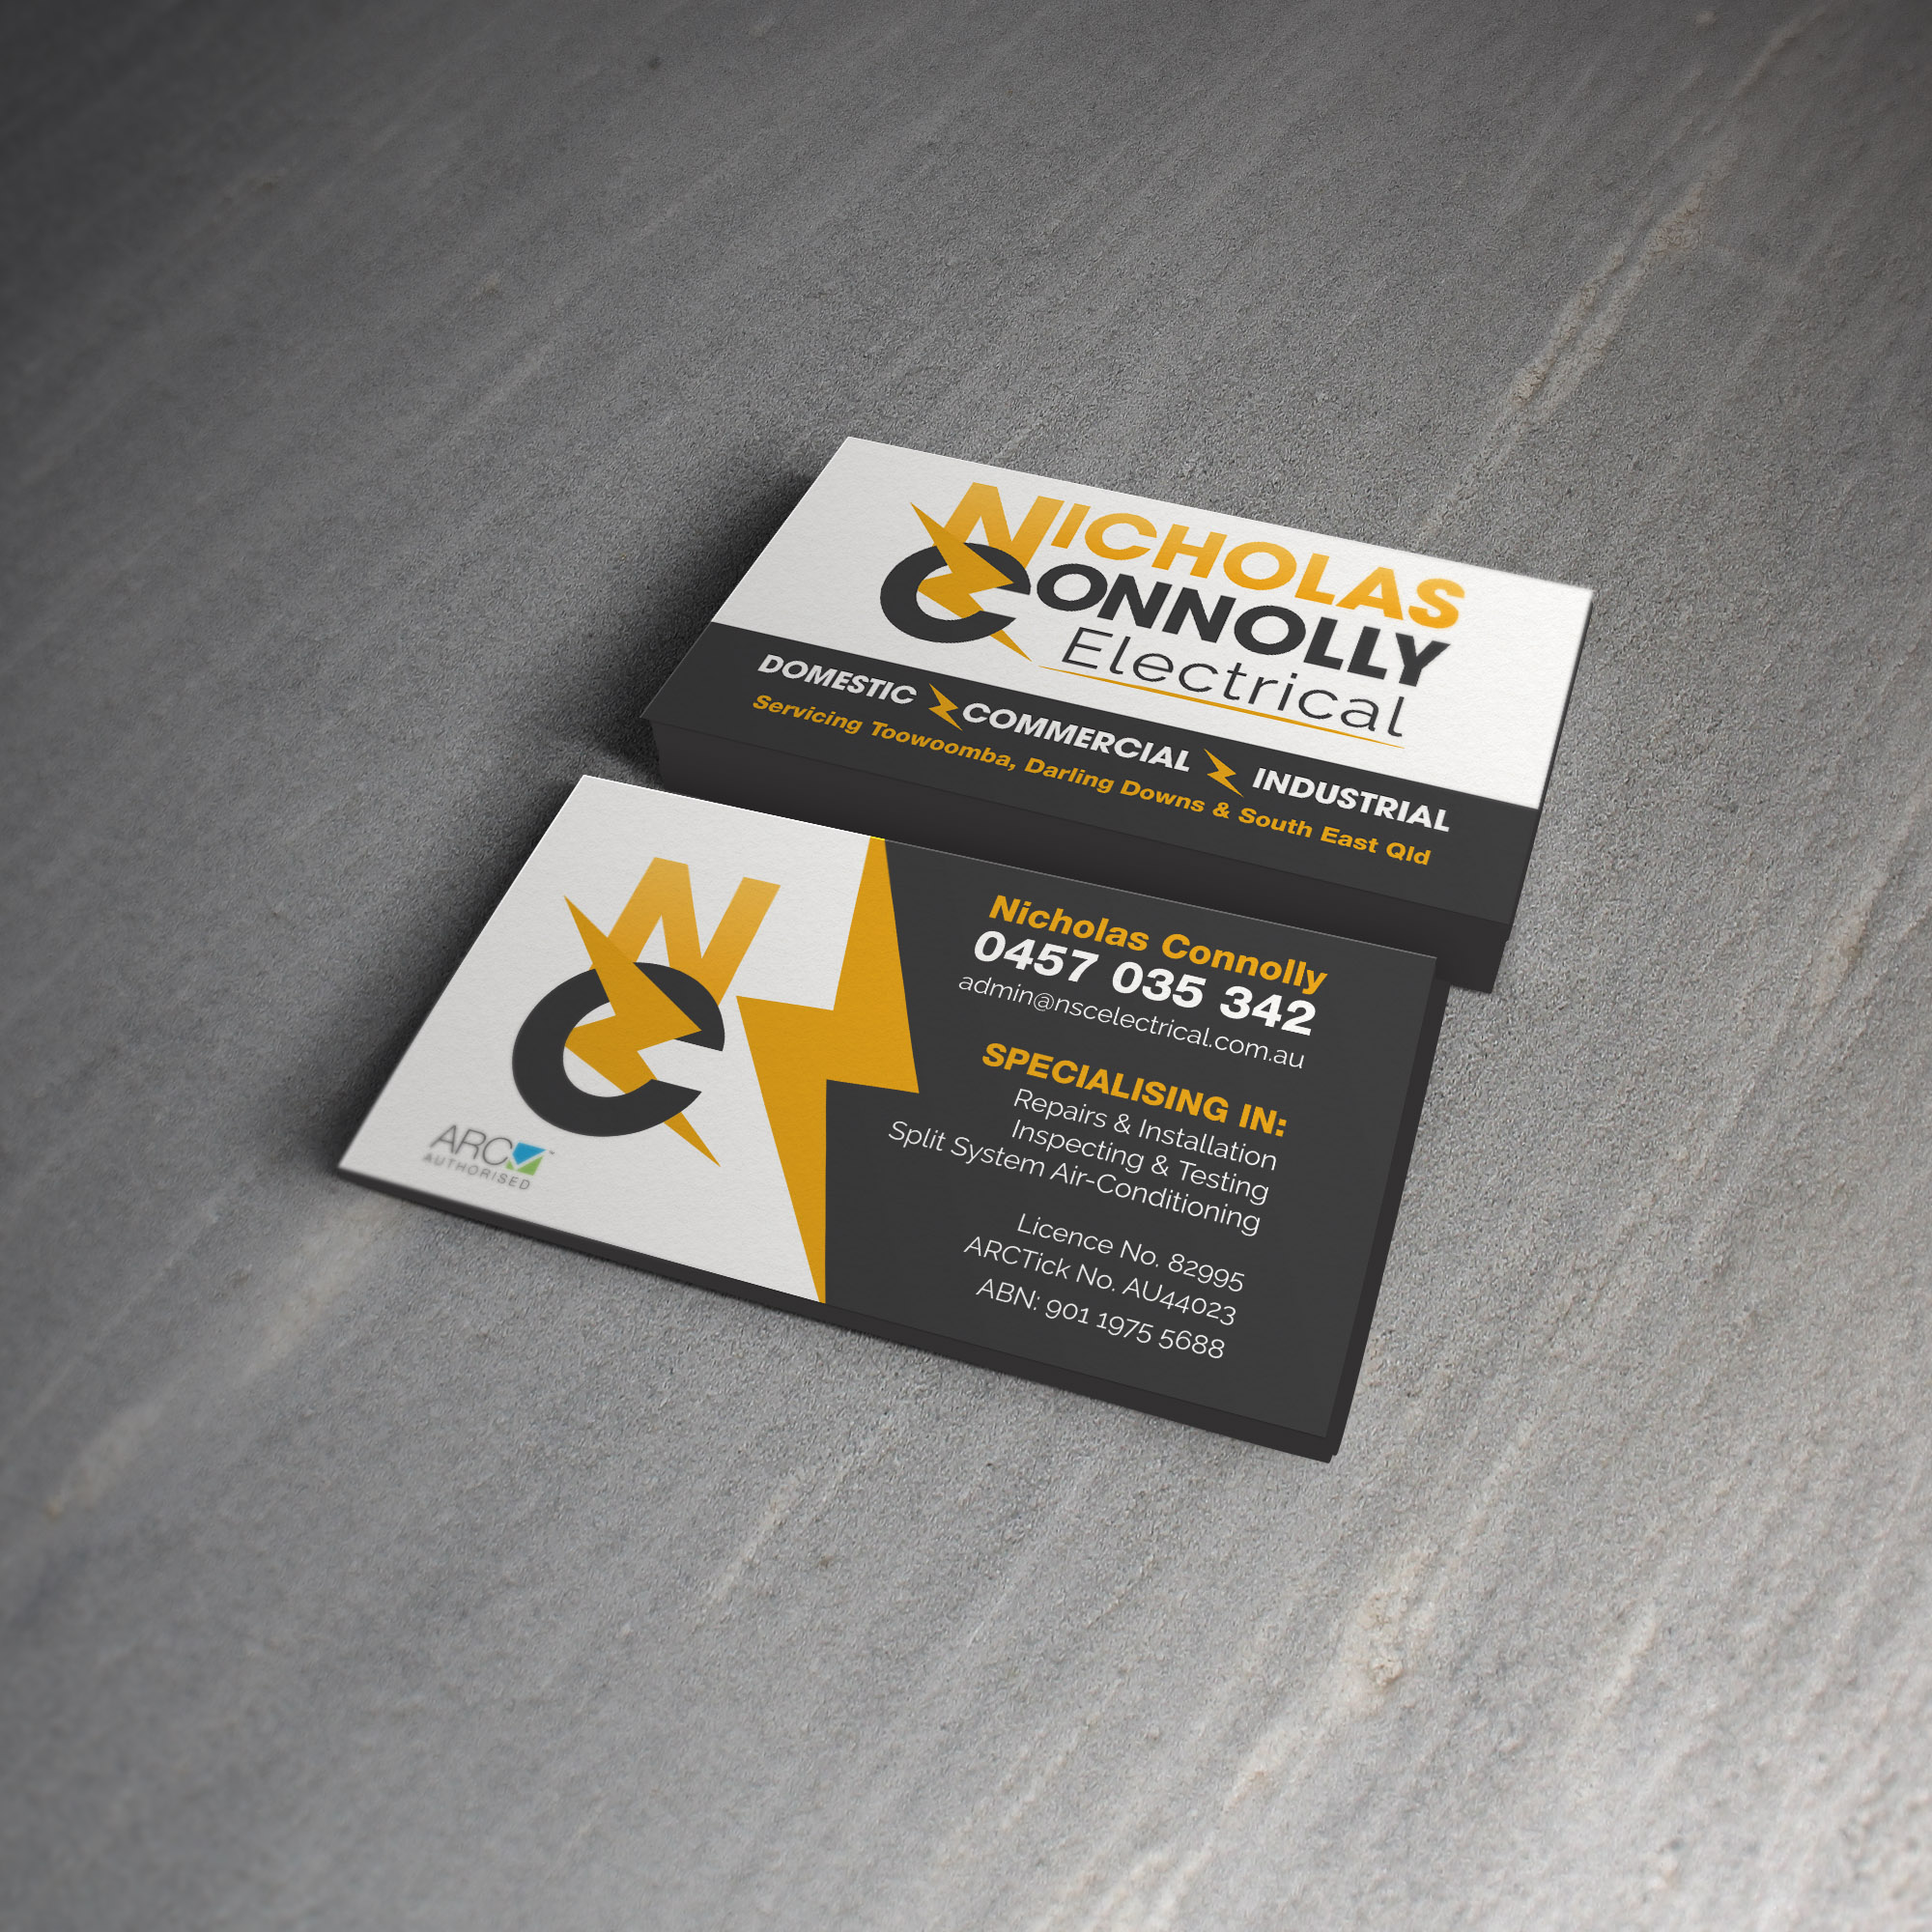 Nicholas Connolly Business Card Design